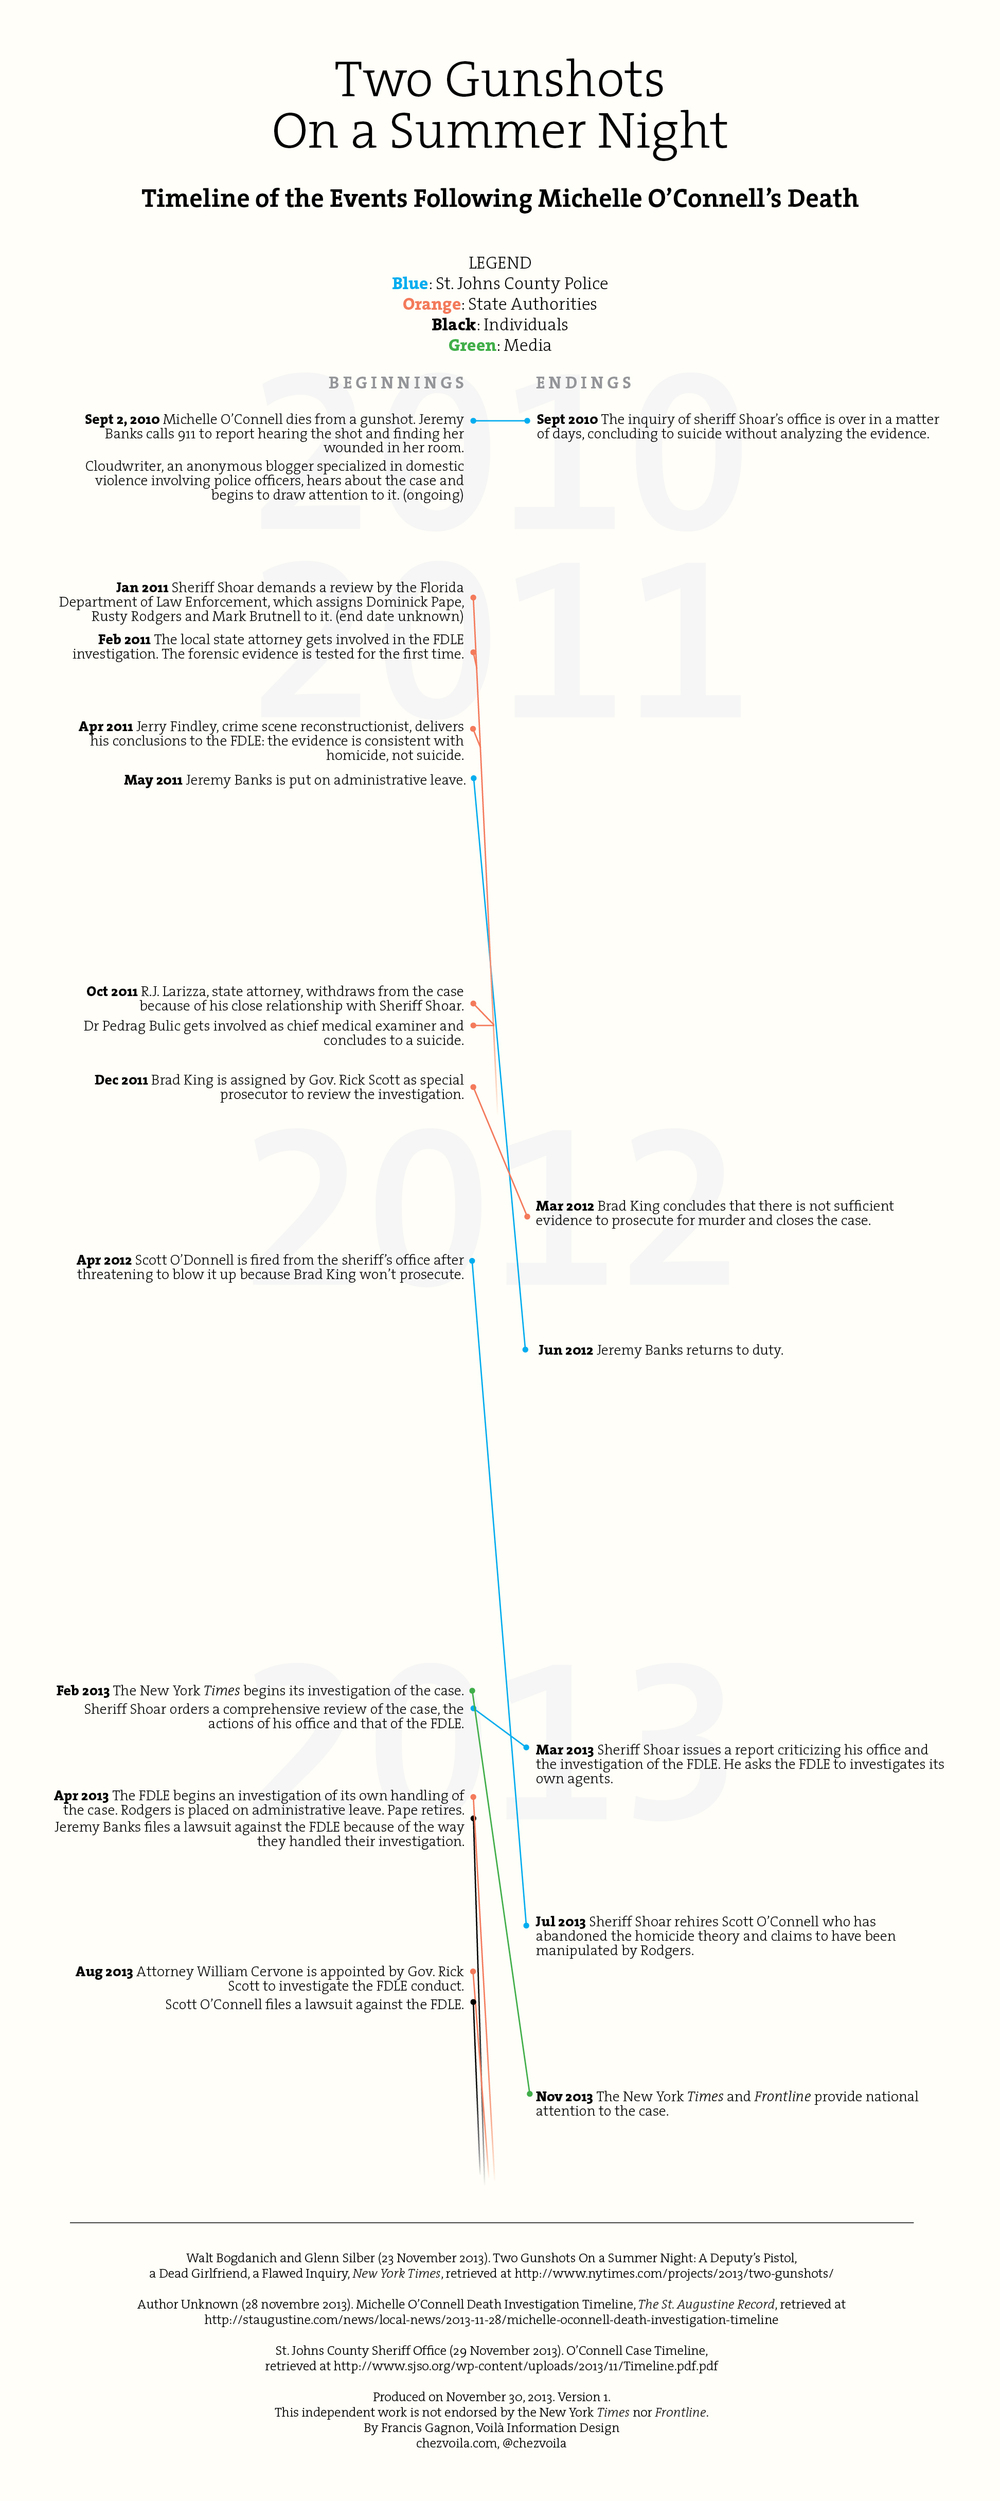 Two Gunshots Visual Timeline.jpg